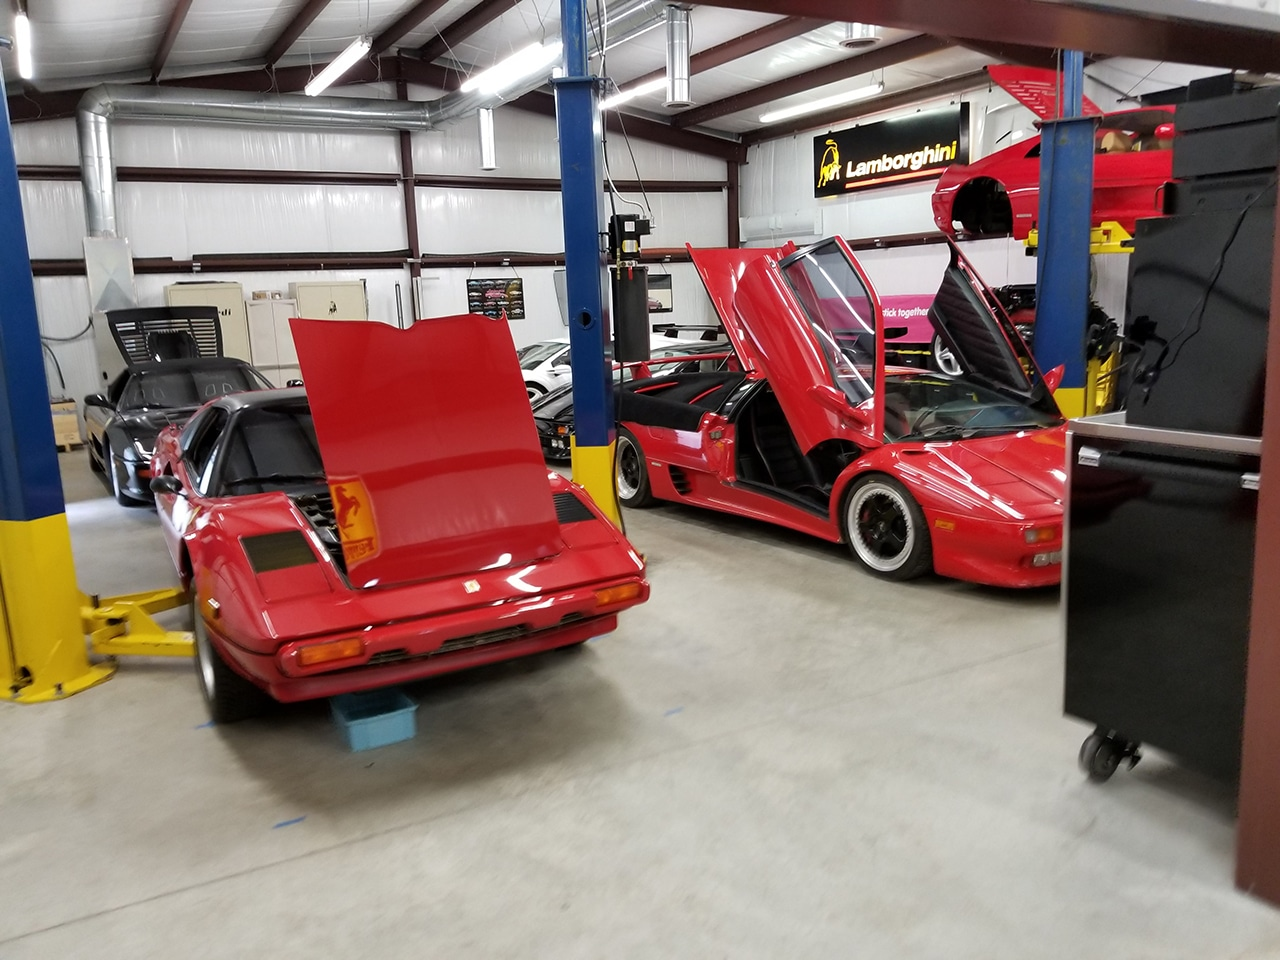 Priceless auto collection in steel building